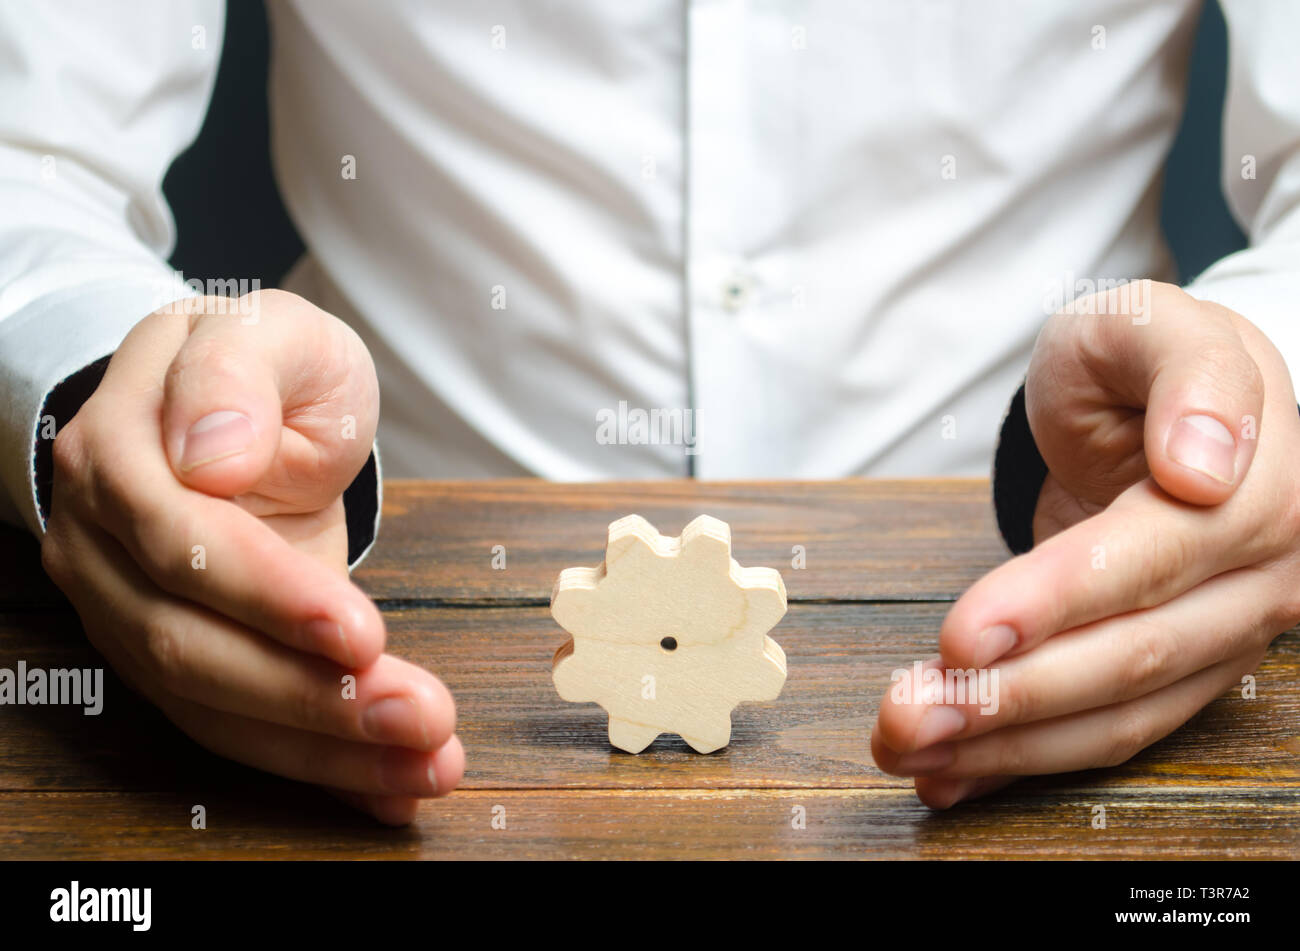 Businessman and wooden gear. Establishing business processes and communications. Development of business relations and cooperation. Efficiency increas - Stock Image